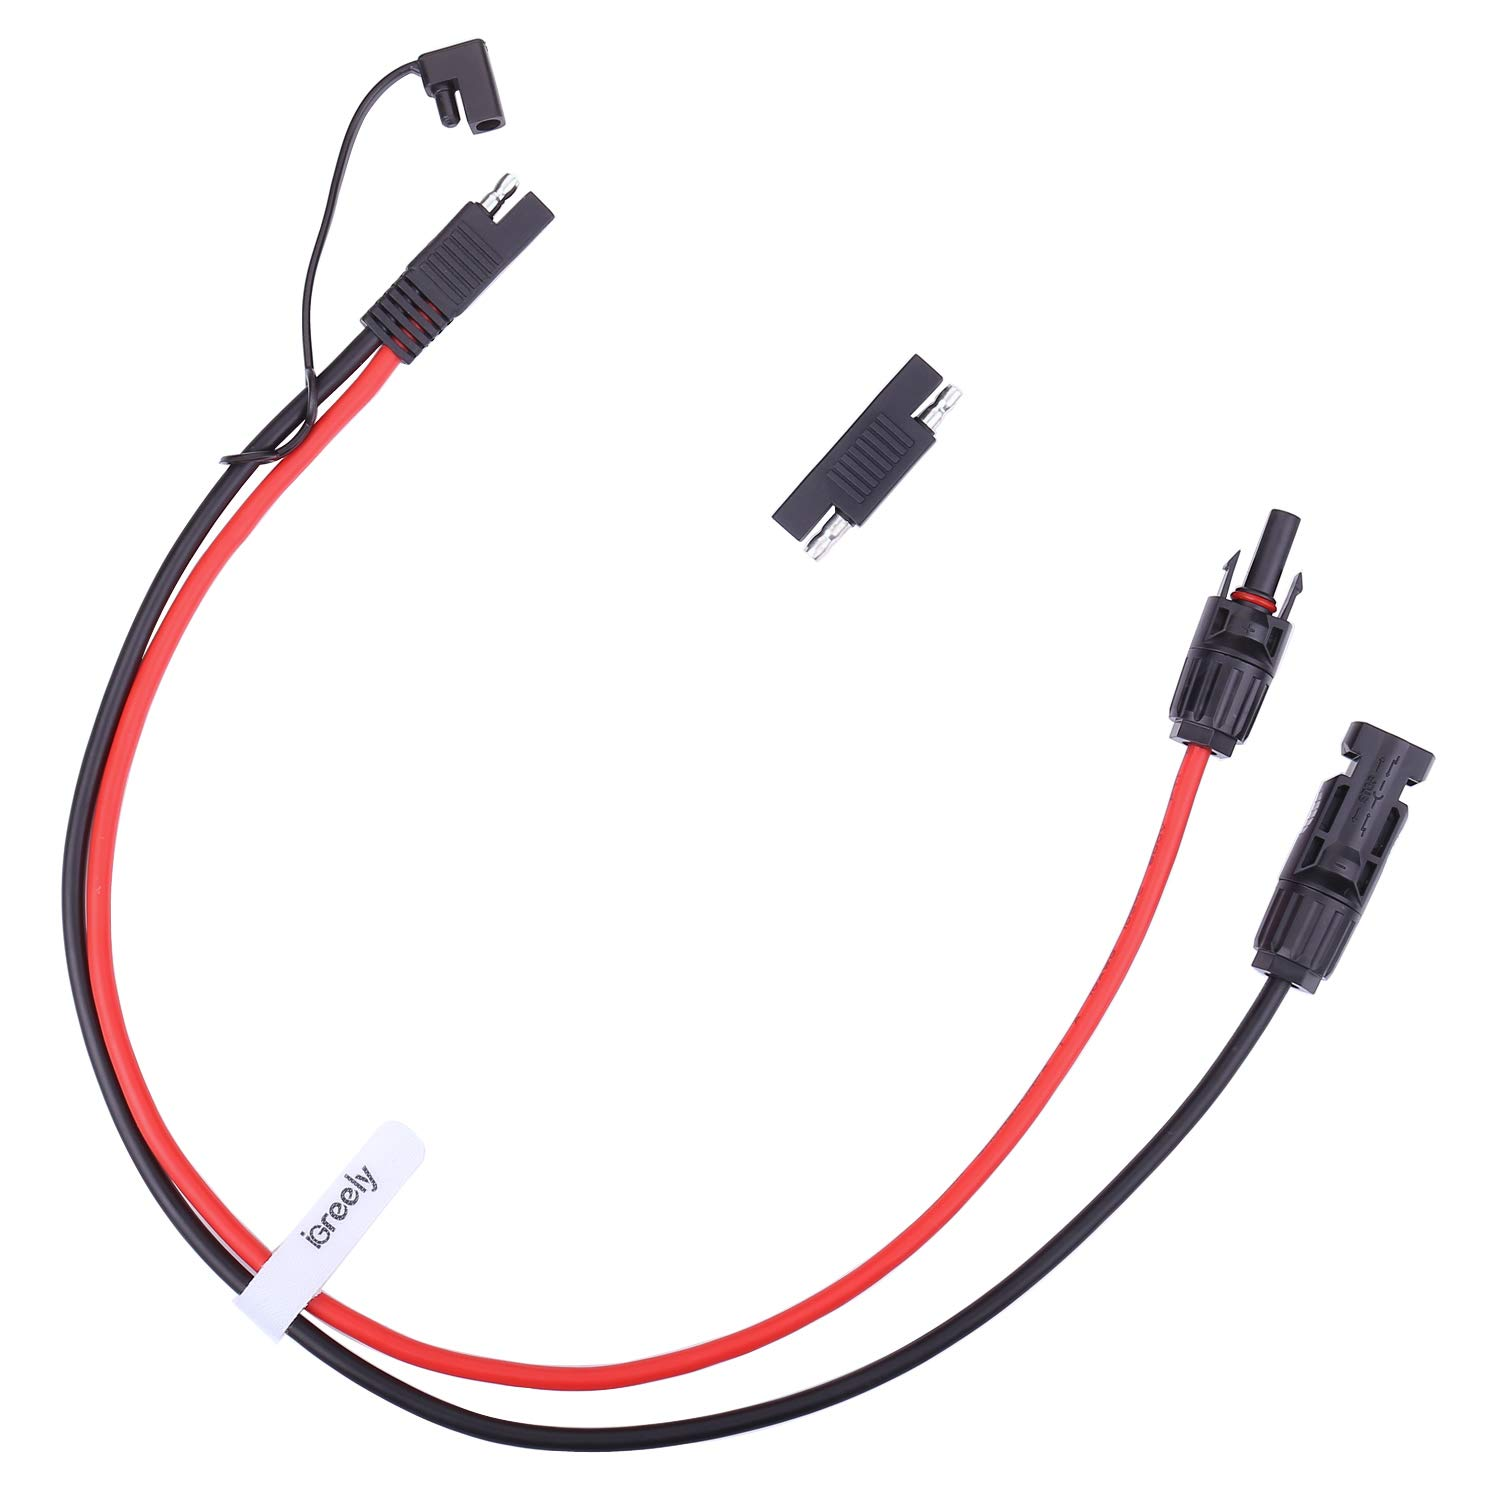 iGreely MC4 to SAE Adapter 10AWG Cable Conector with SAE Polarity Reverse Adapter for RV Panel Solar 2ft/60cm by iGreely